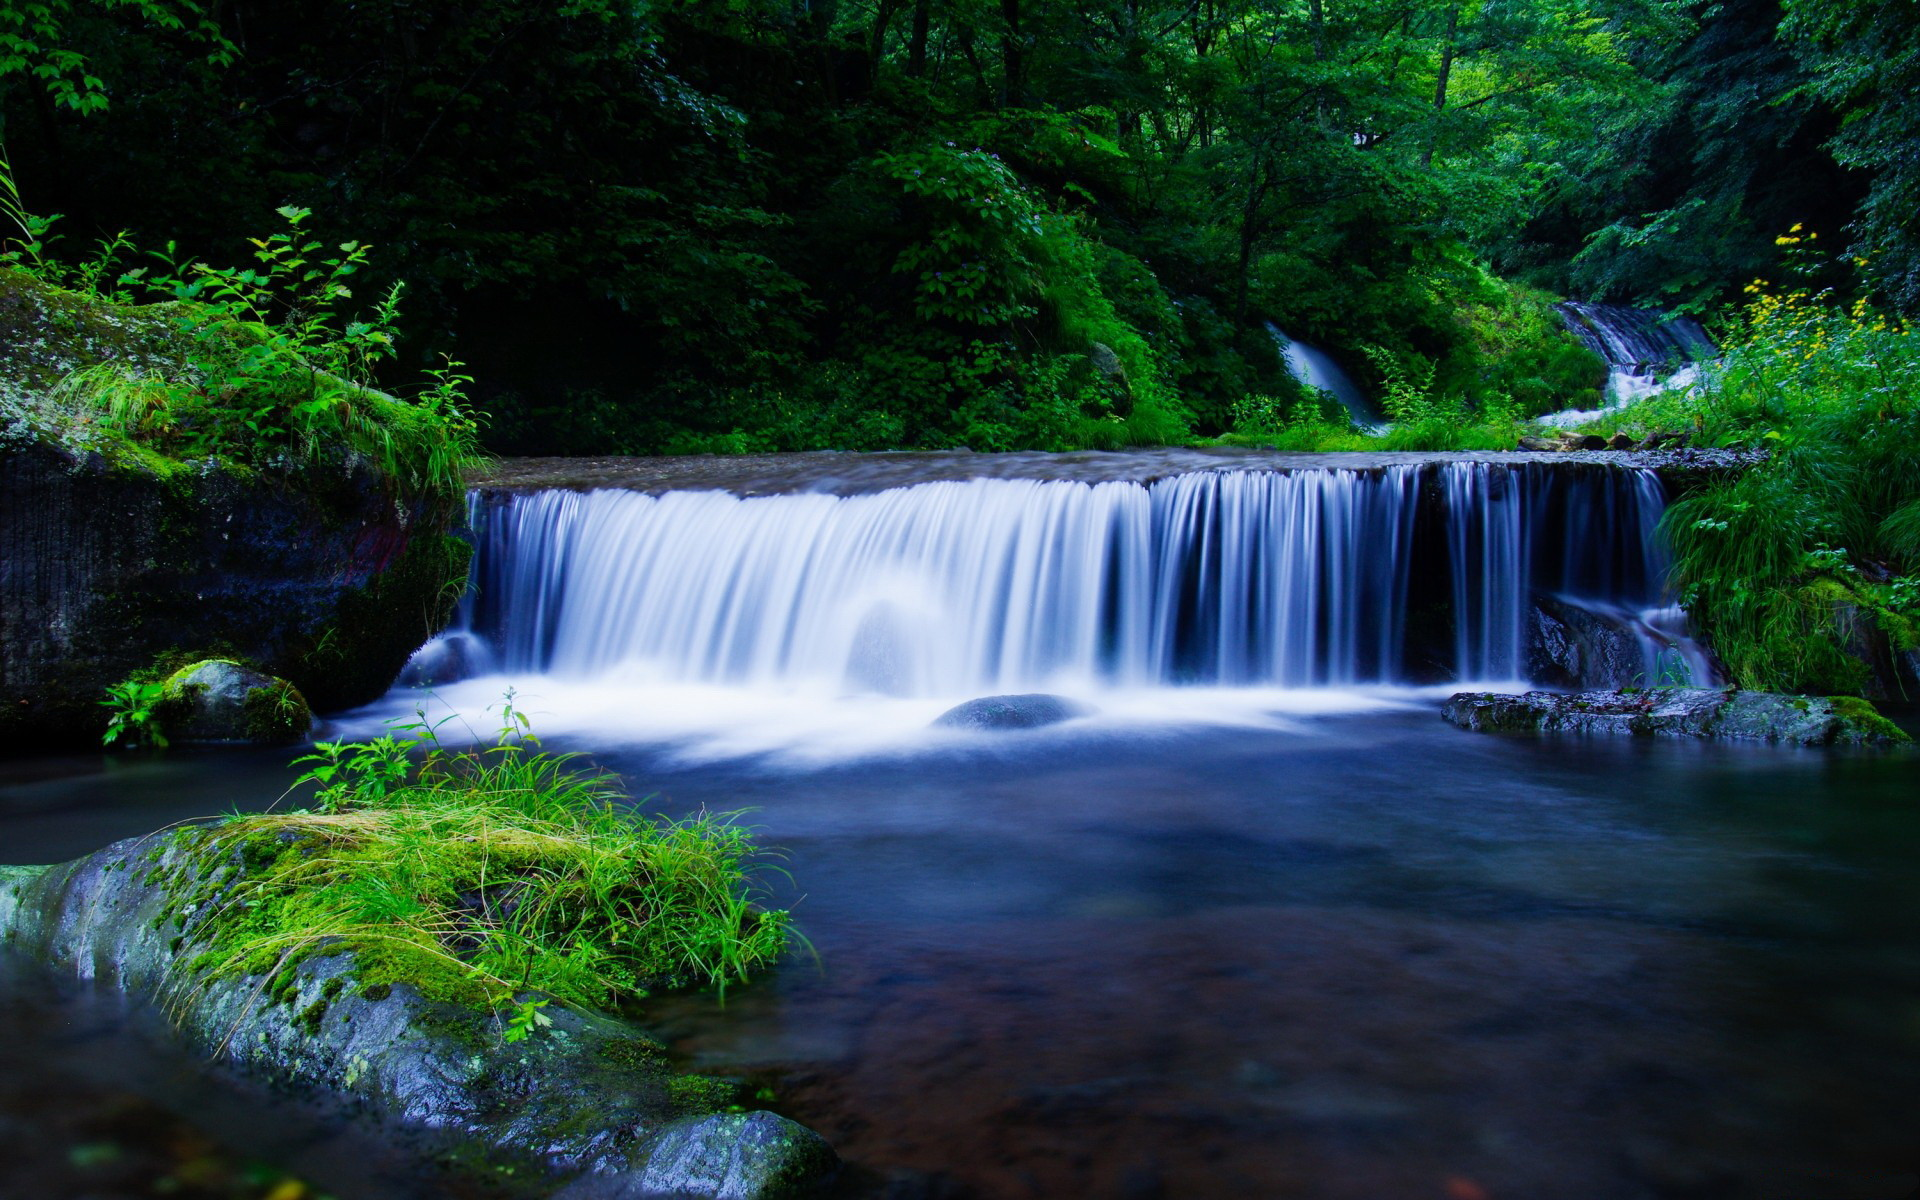 Free Animated Wallpapers For Android Phones Animated Waterfall Wallpaper With Sound 46 Images